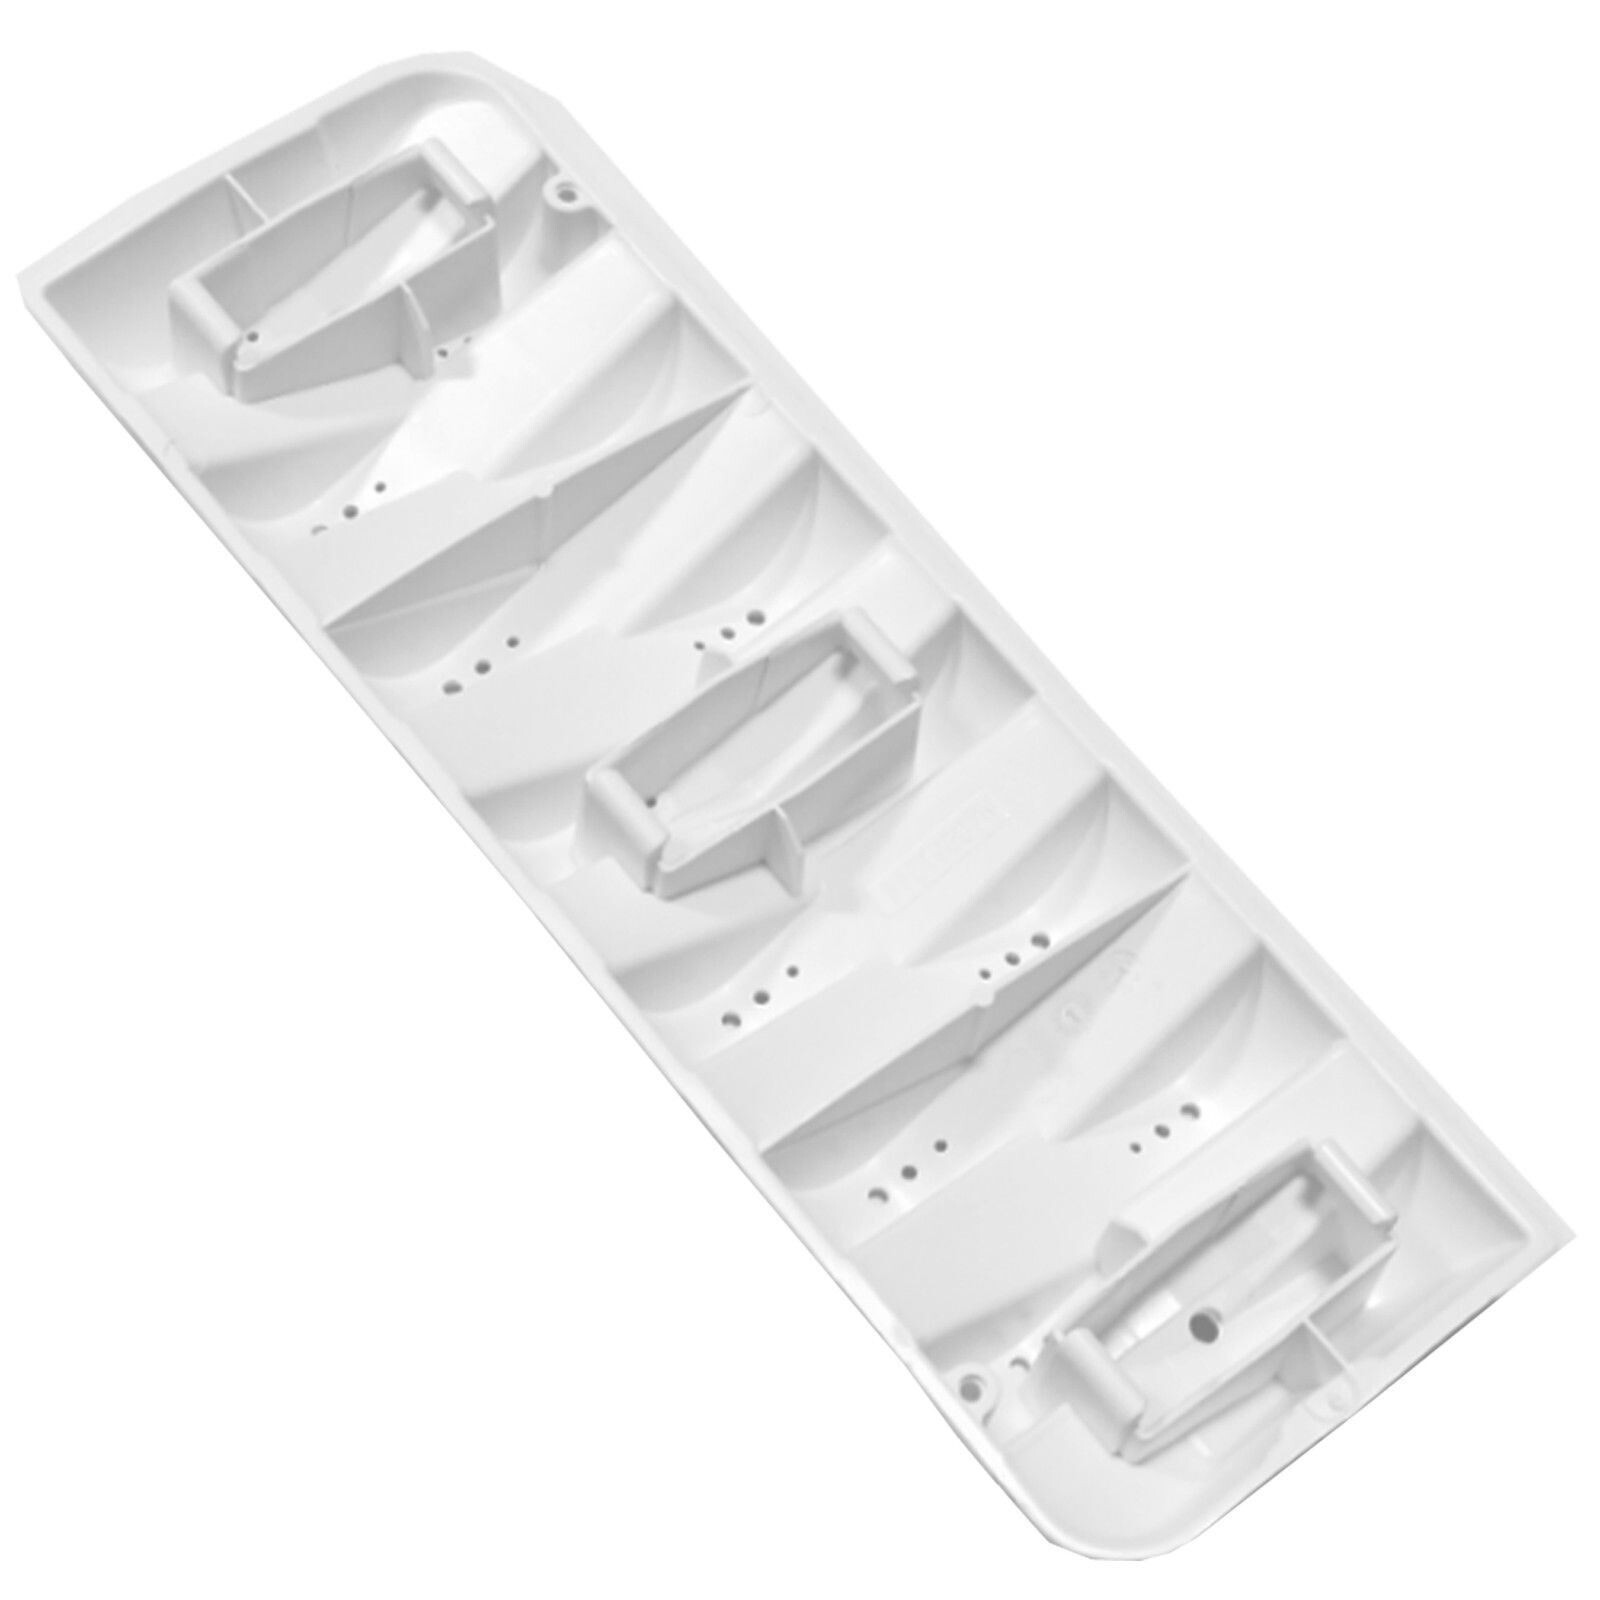 Home & Garden Parts & Accessories Fits Whirlpool Washing Machine Drum Paddle Lifter Baffle 480111104174 C00311026 High Quality Goods